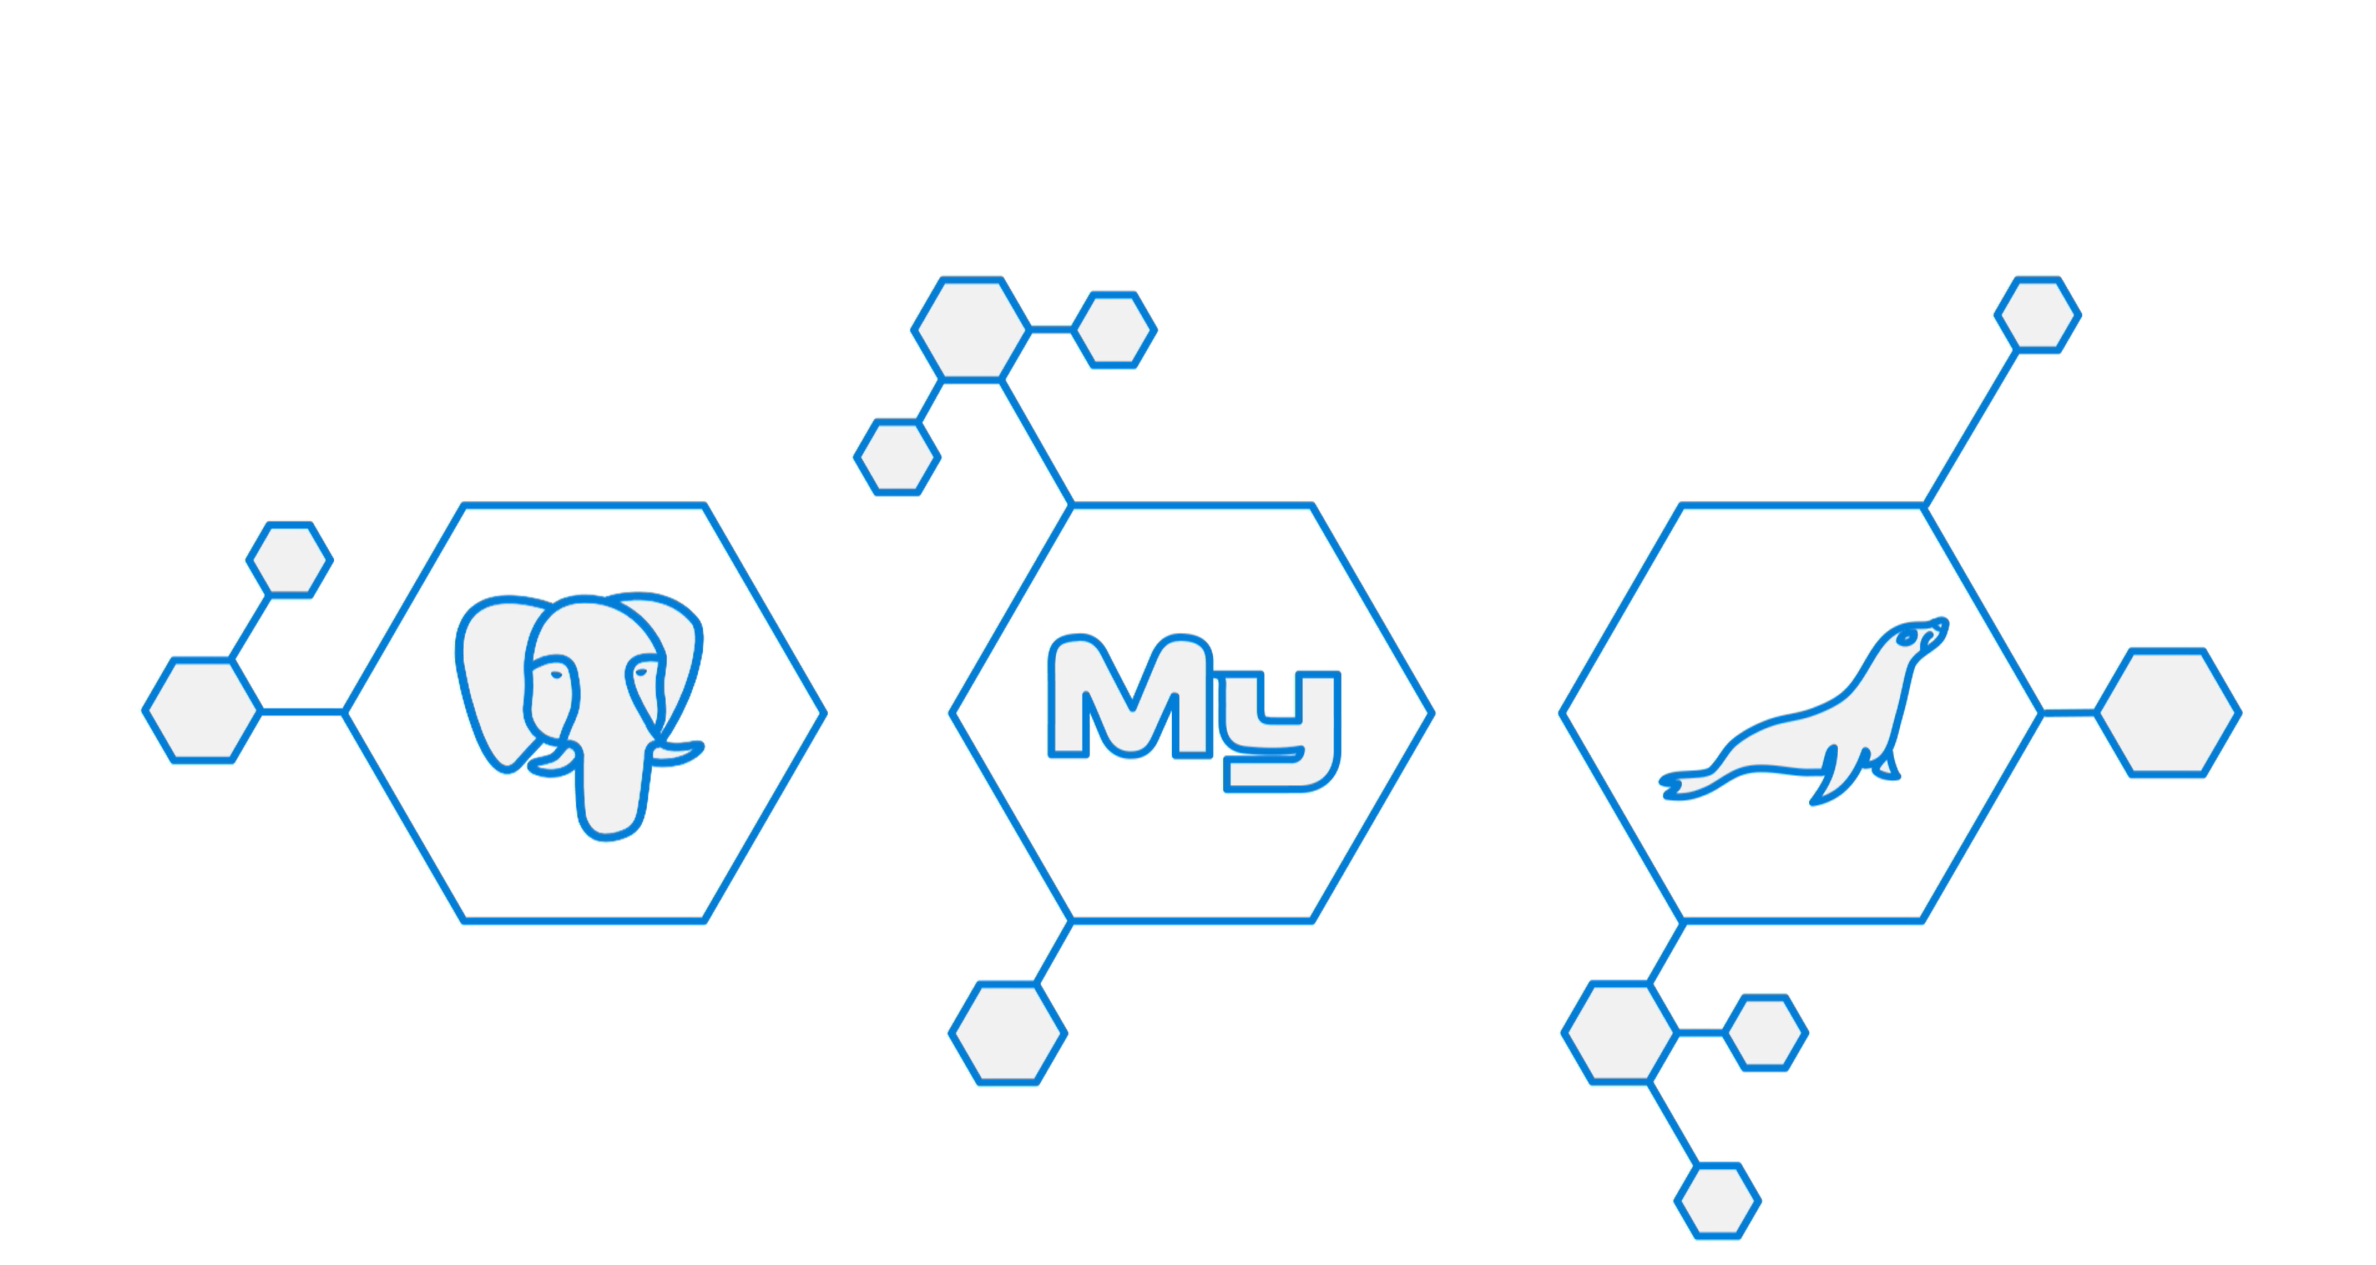 Azure database services for MySQL, PostgreSQL, and MariaDB